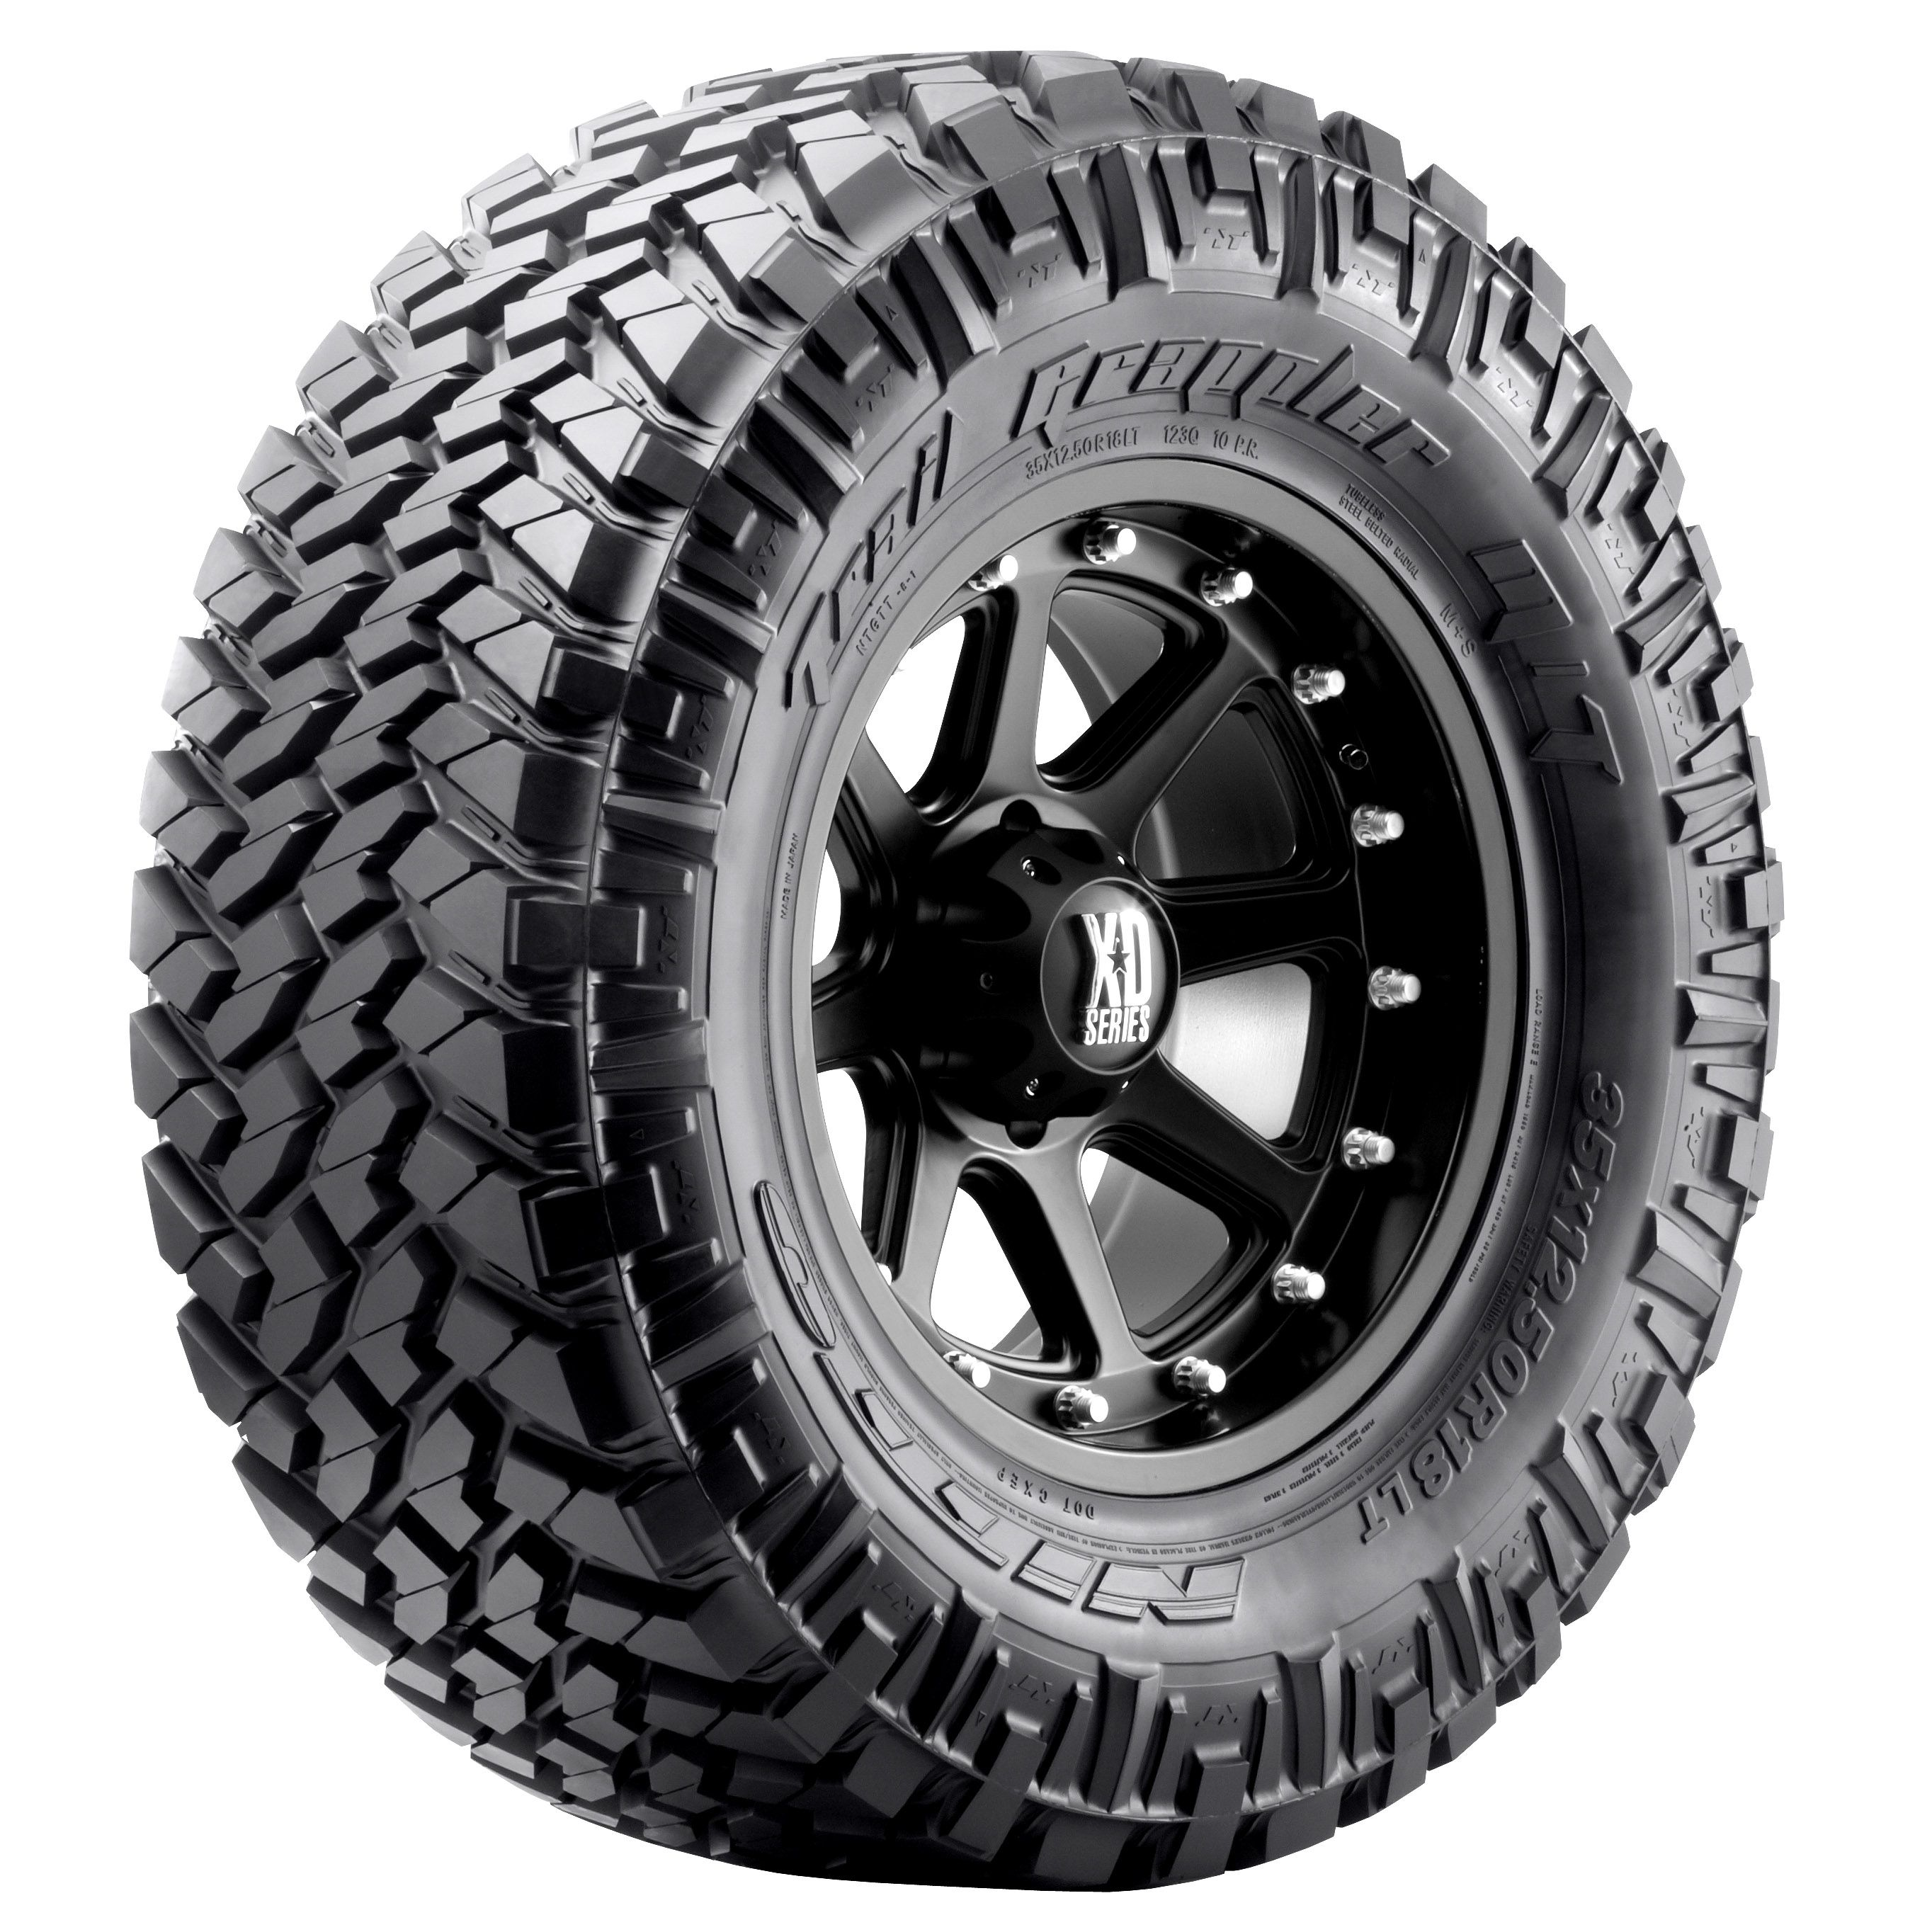 Trail Grappler Trail Terrain Light Truck Radial Nitto Tire Truck Tyres Jeep